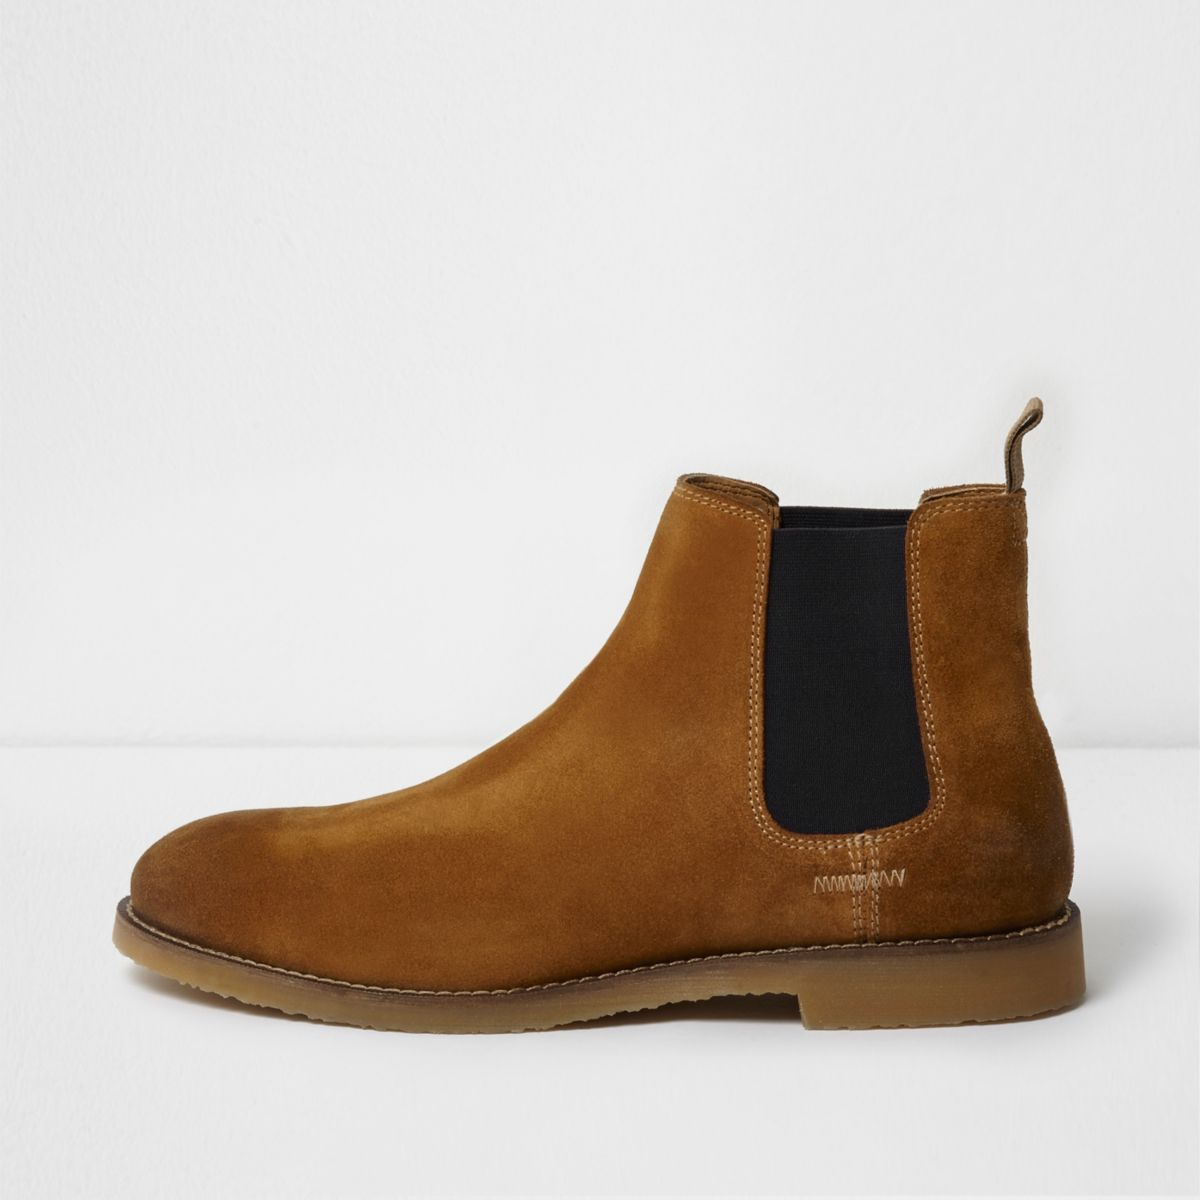 River Island Mens Tan suede chelsea boots NqTxEHD19W